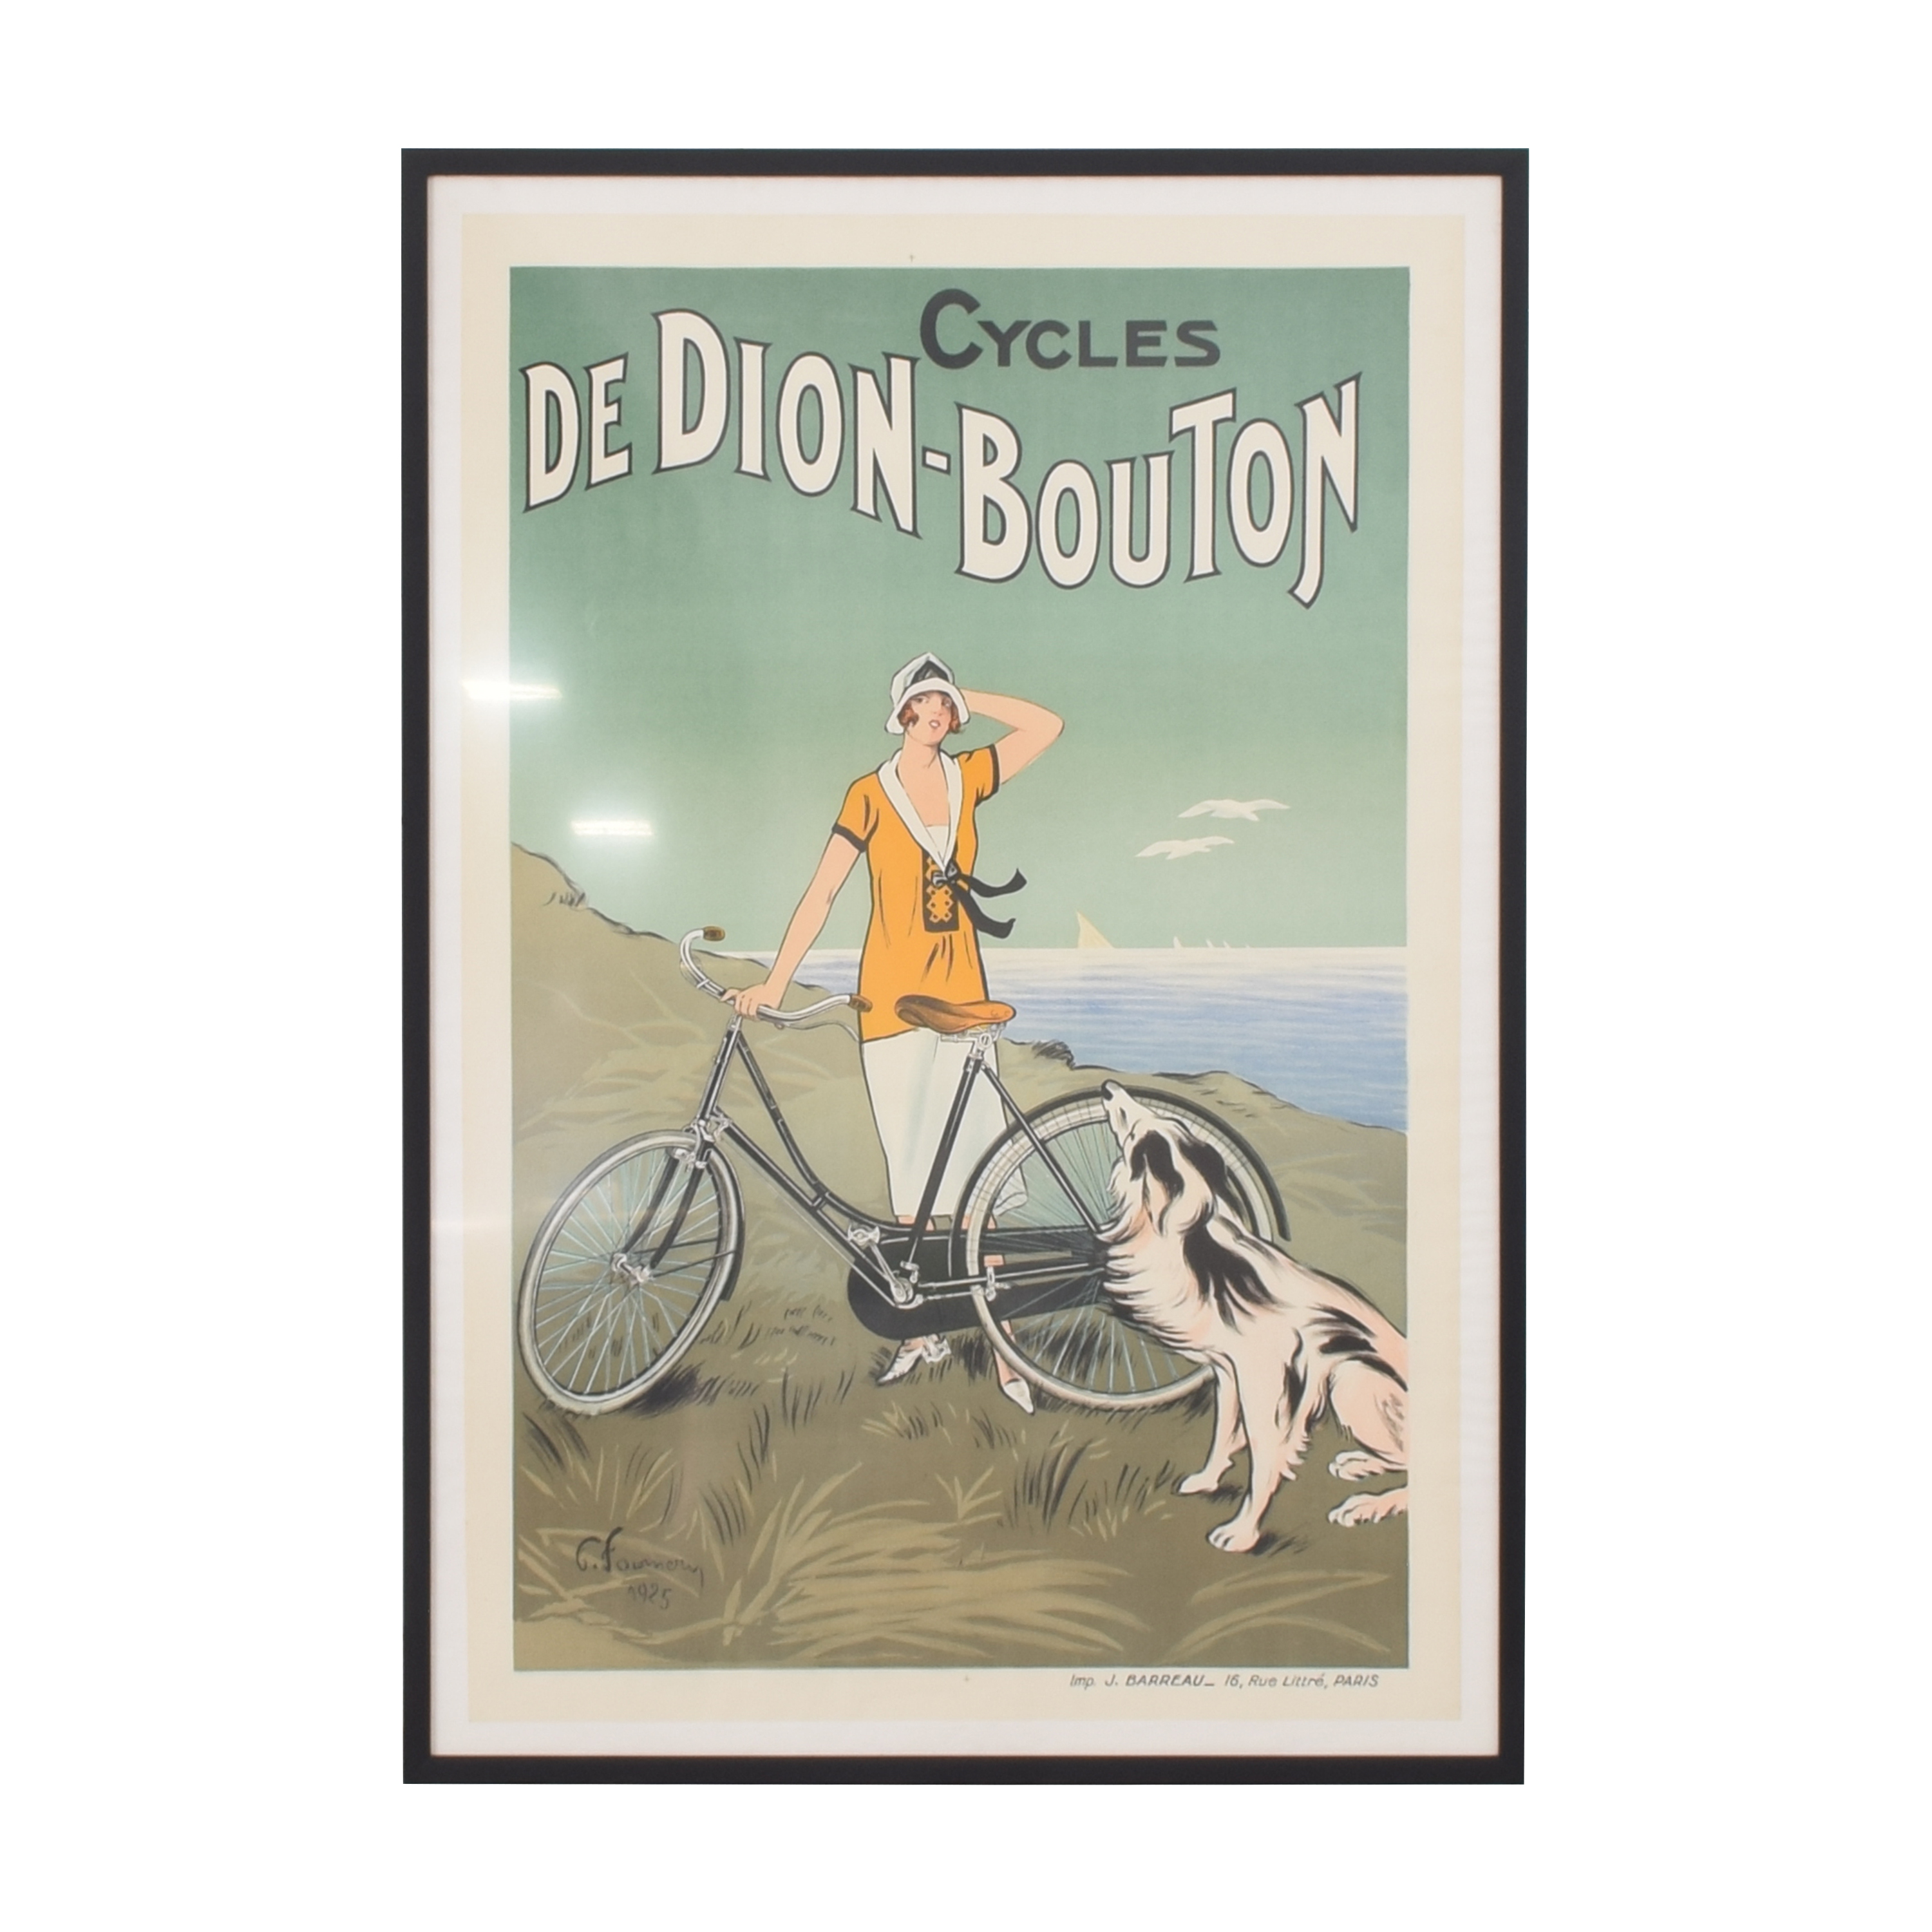 buy  Cycles De Dion-Bouton Framed Poster Wall Art online